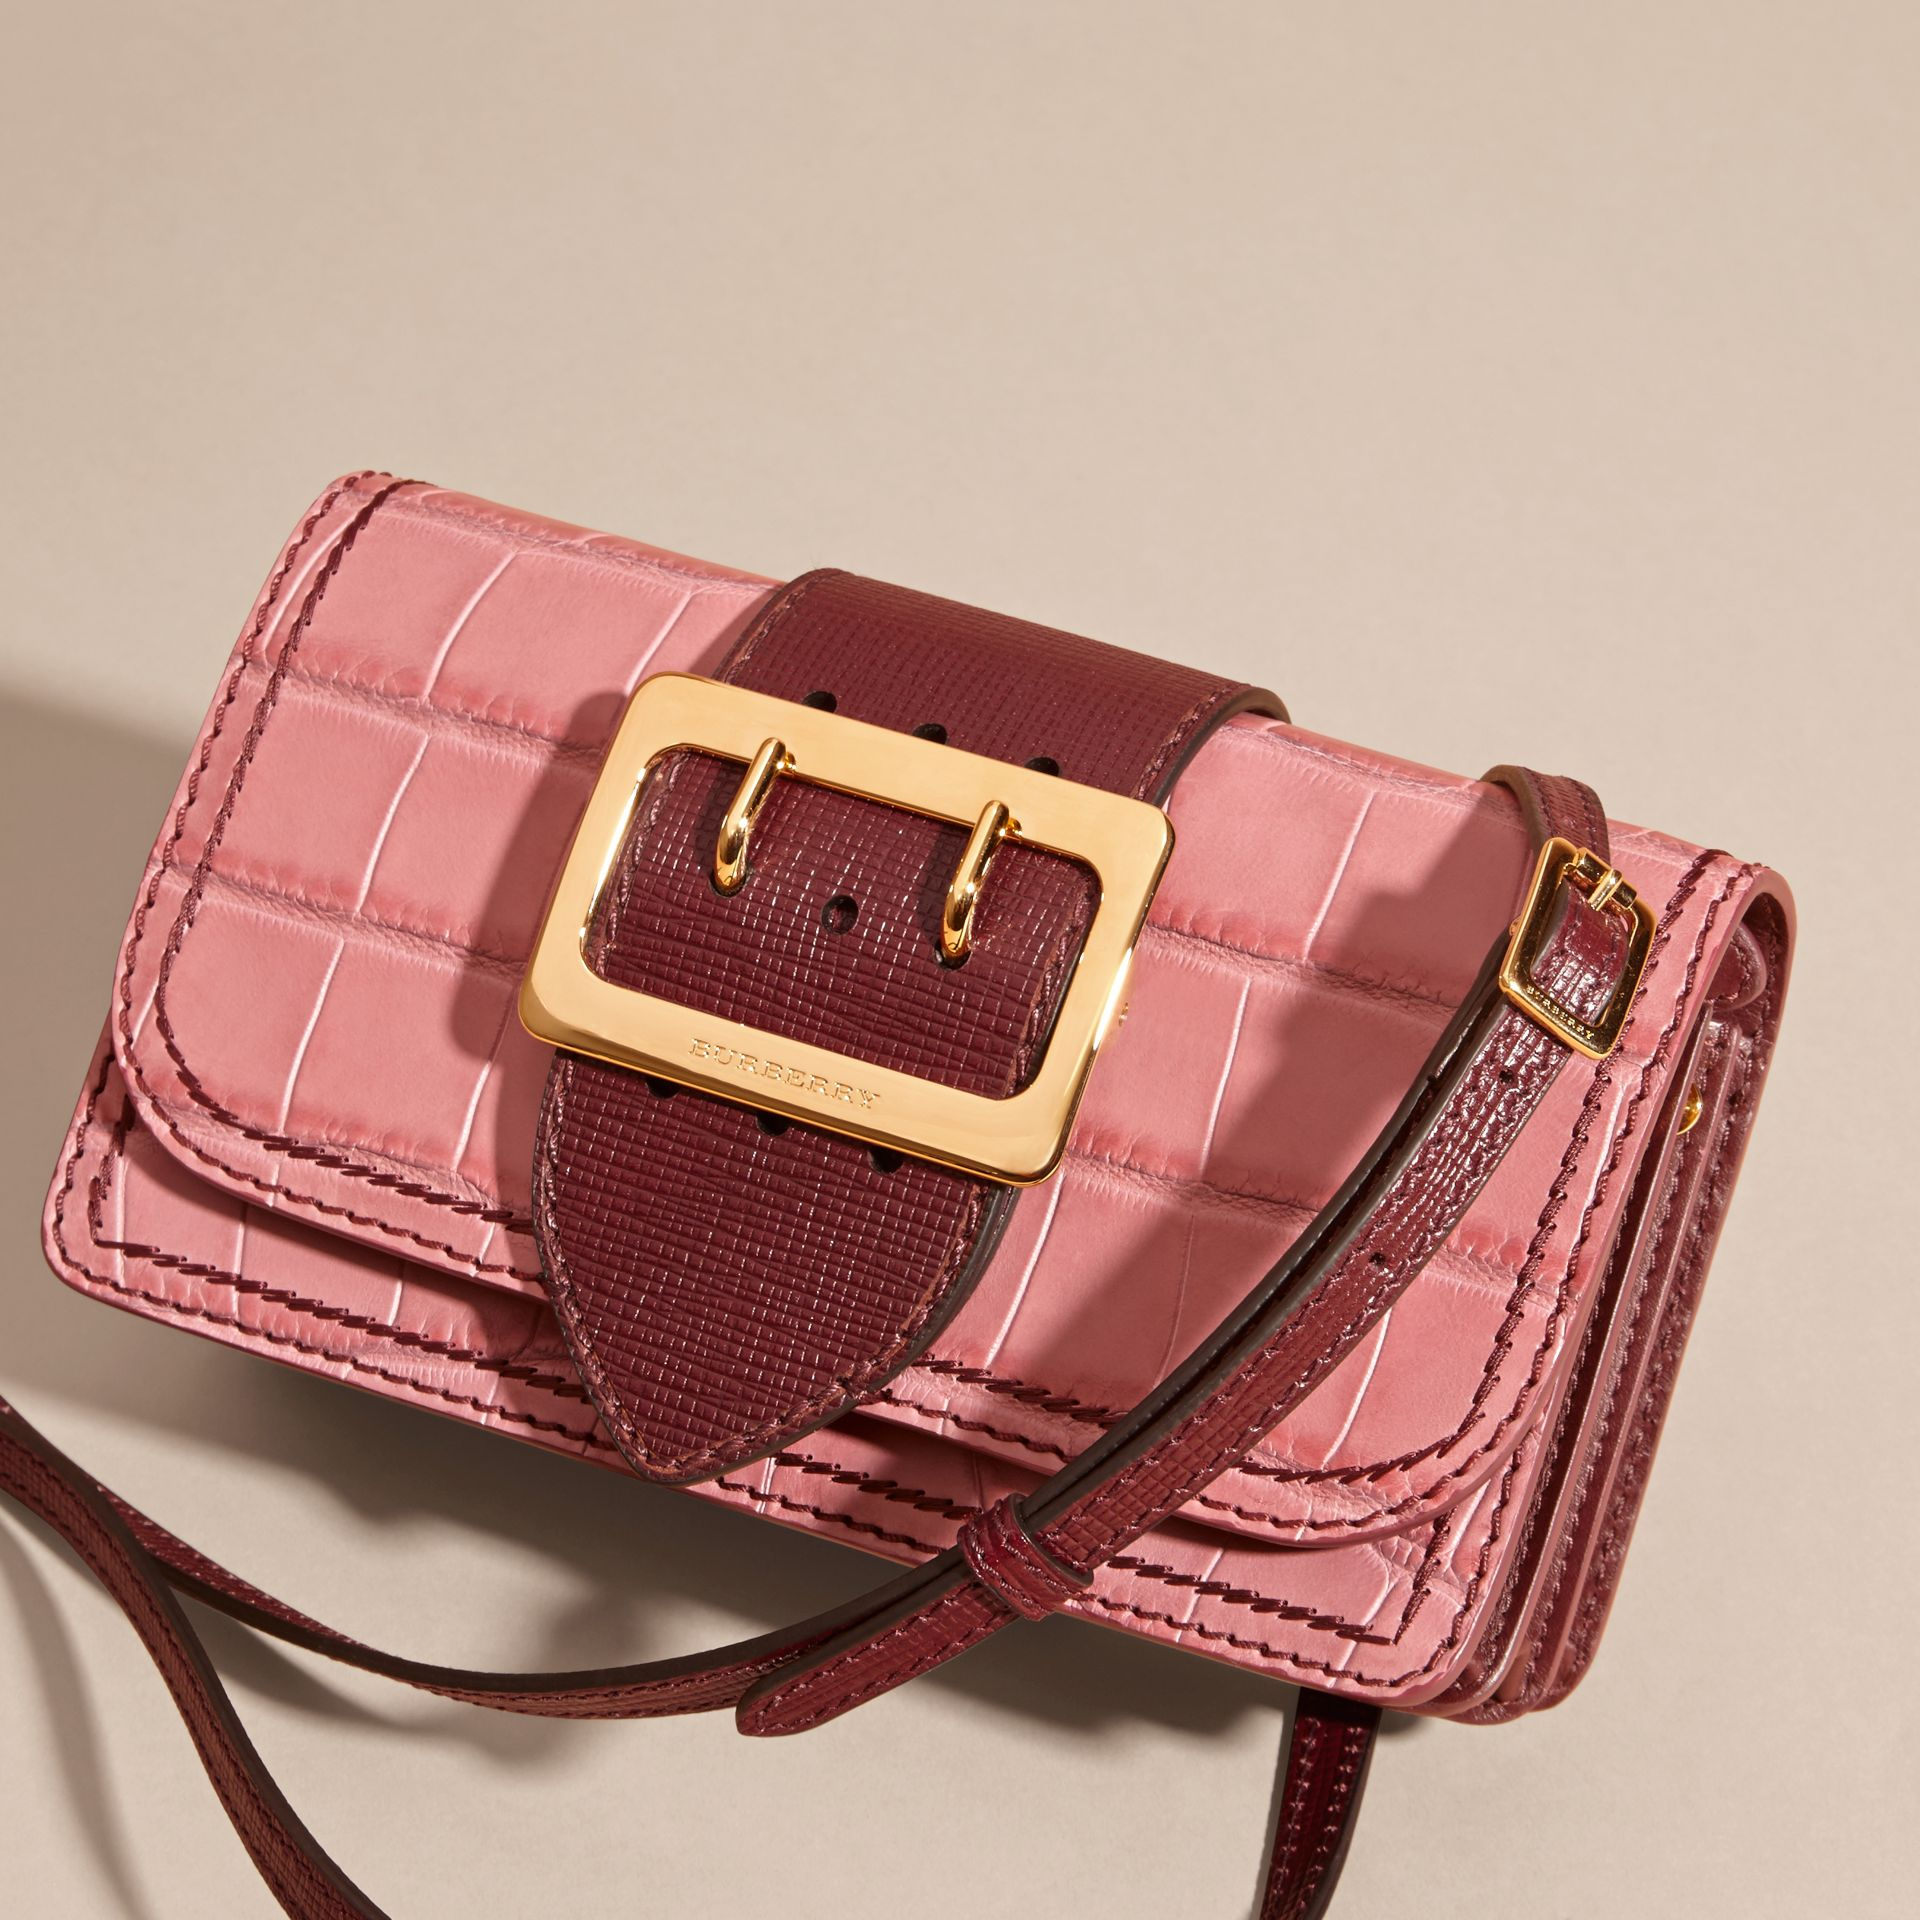 The Small Buckle Bag in Alligator and Leather in Dusky Pink/ Burgundy - Women | Burberry - gallery image 8